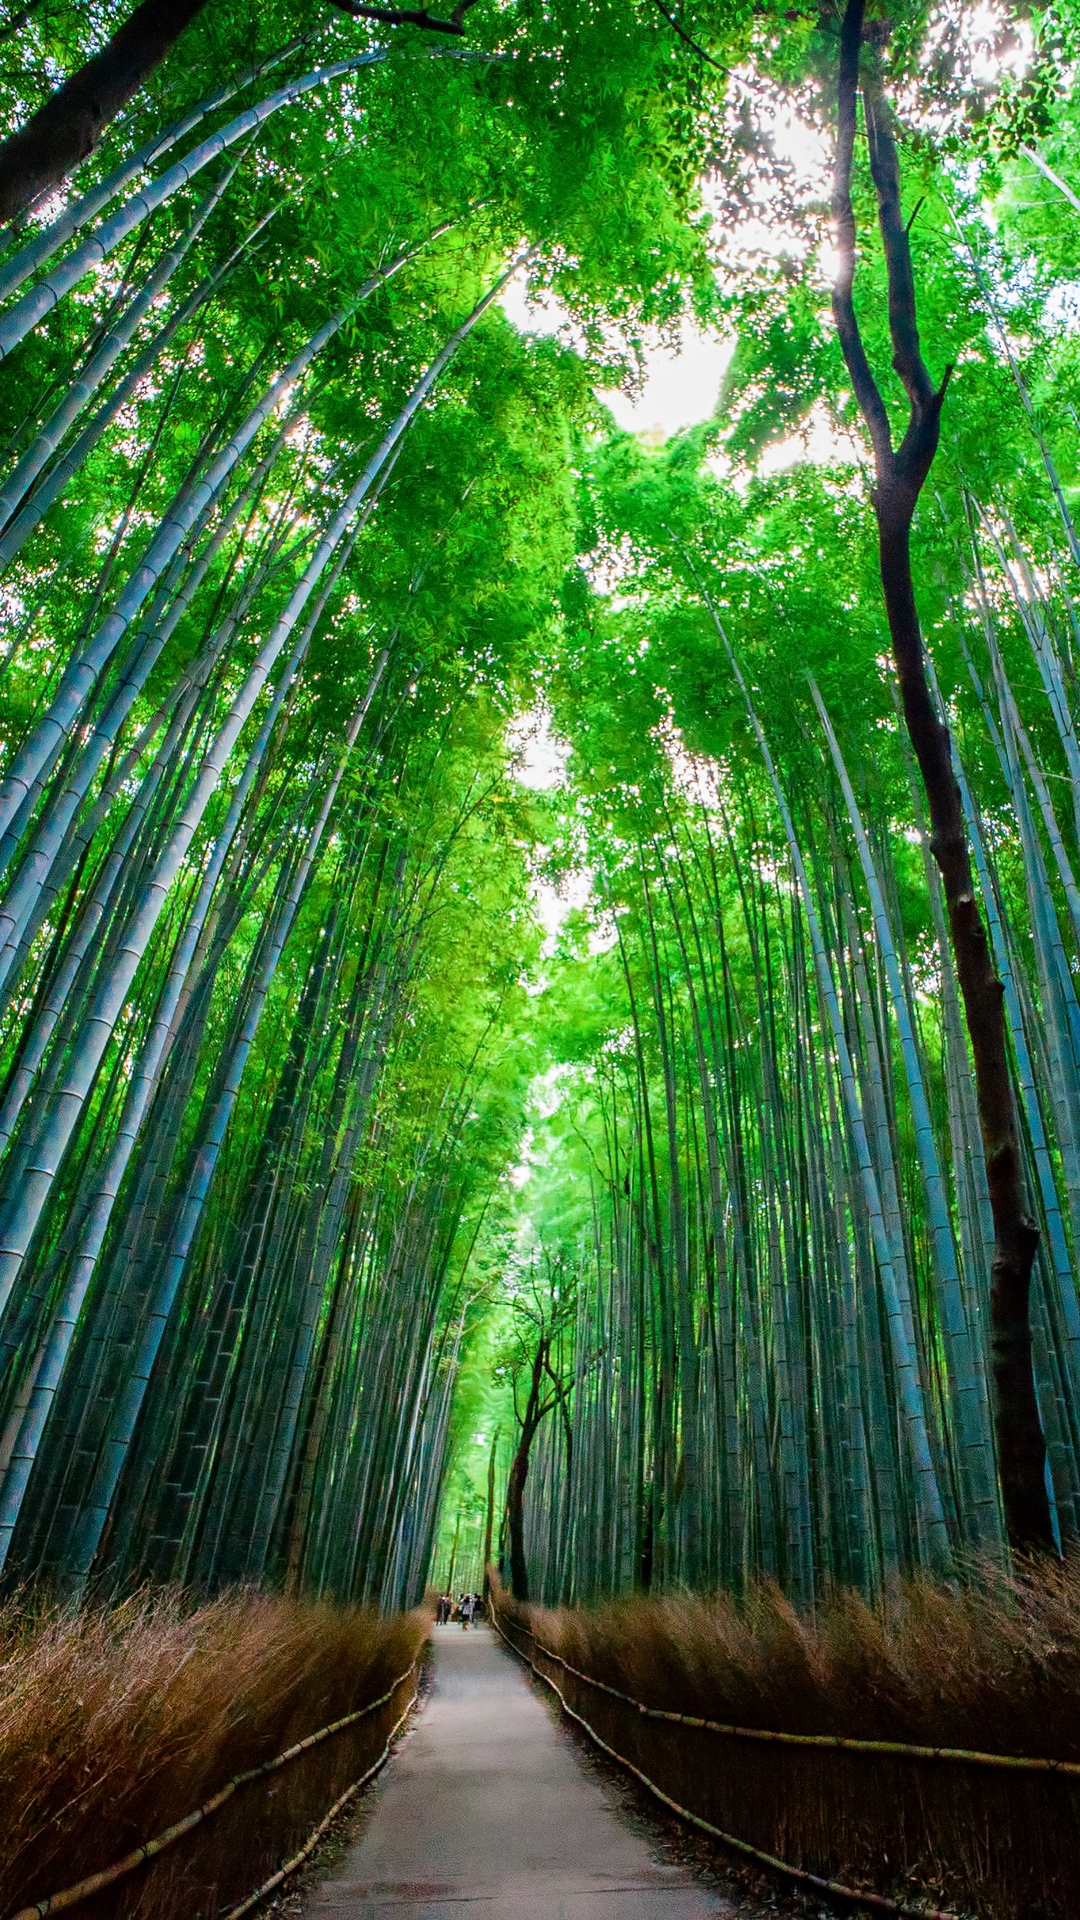 Wallpaper Bamboo, Forest, Trees, Bottom View - Forests And Woodlands In Japan - HD Wallpaper